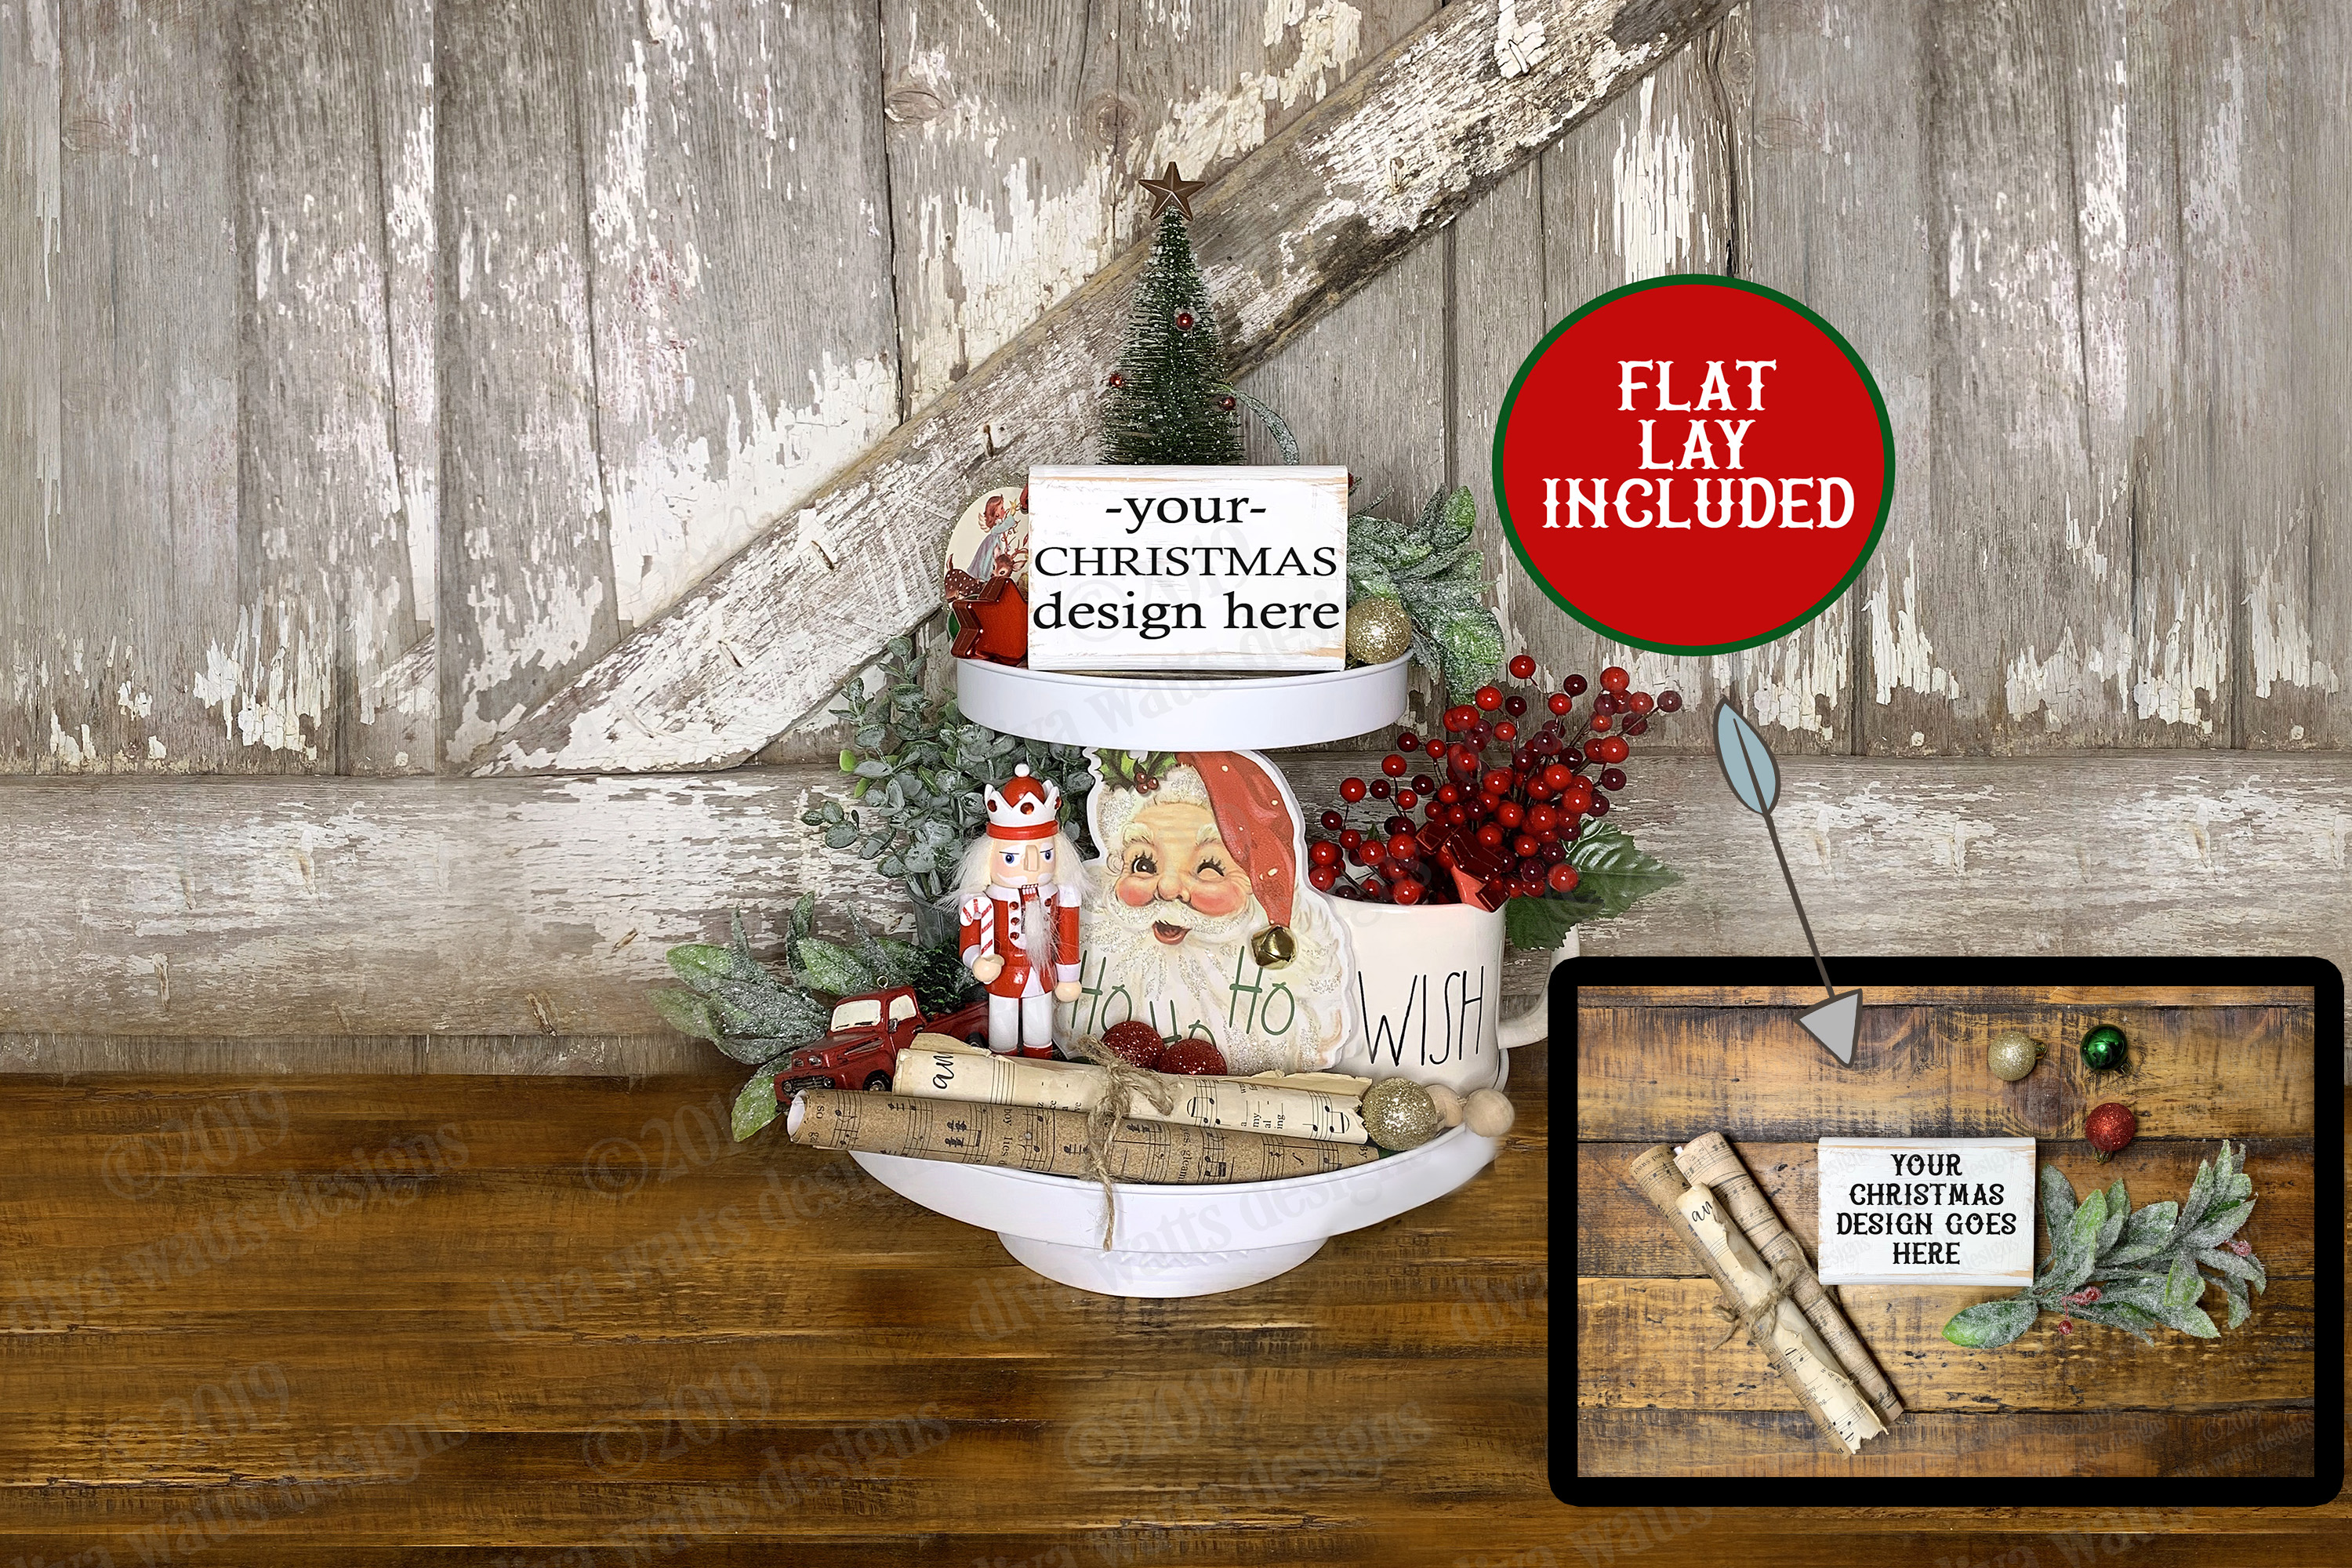 Christmas Tiered Tray Mockup Set with Flat Lay Included example image 1